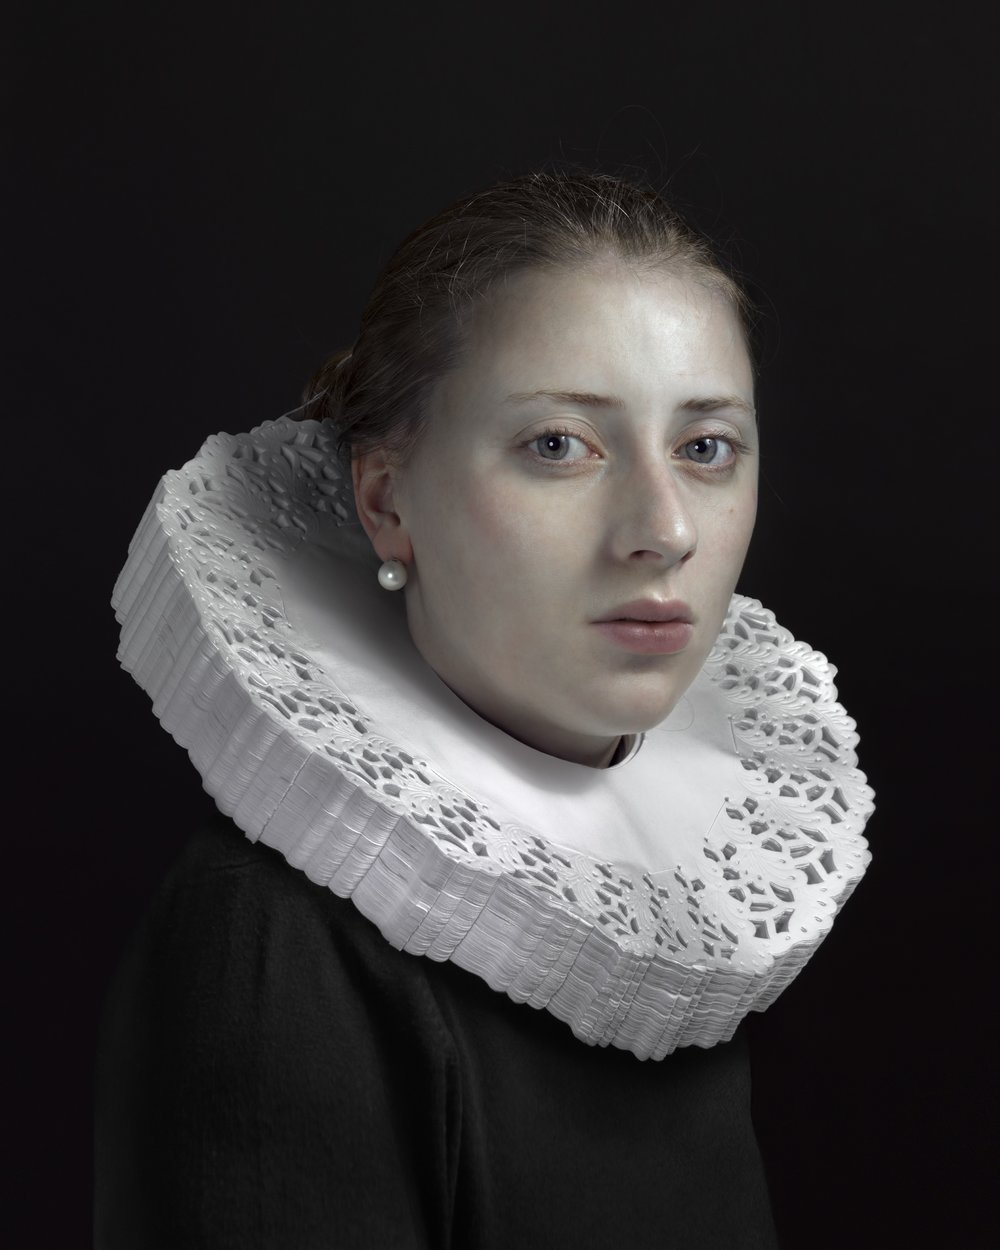 Hendrik Kerstens,  Doily , 2011, ultrachrome print, 62.5 x 50cm; image courtesy the artist